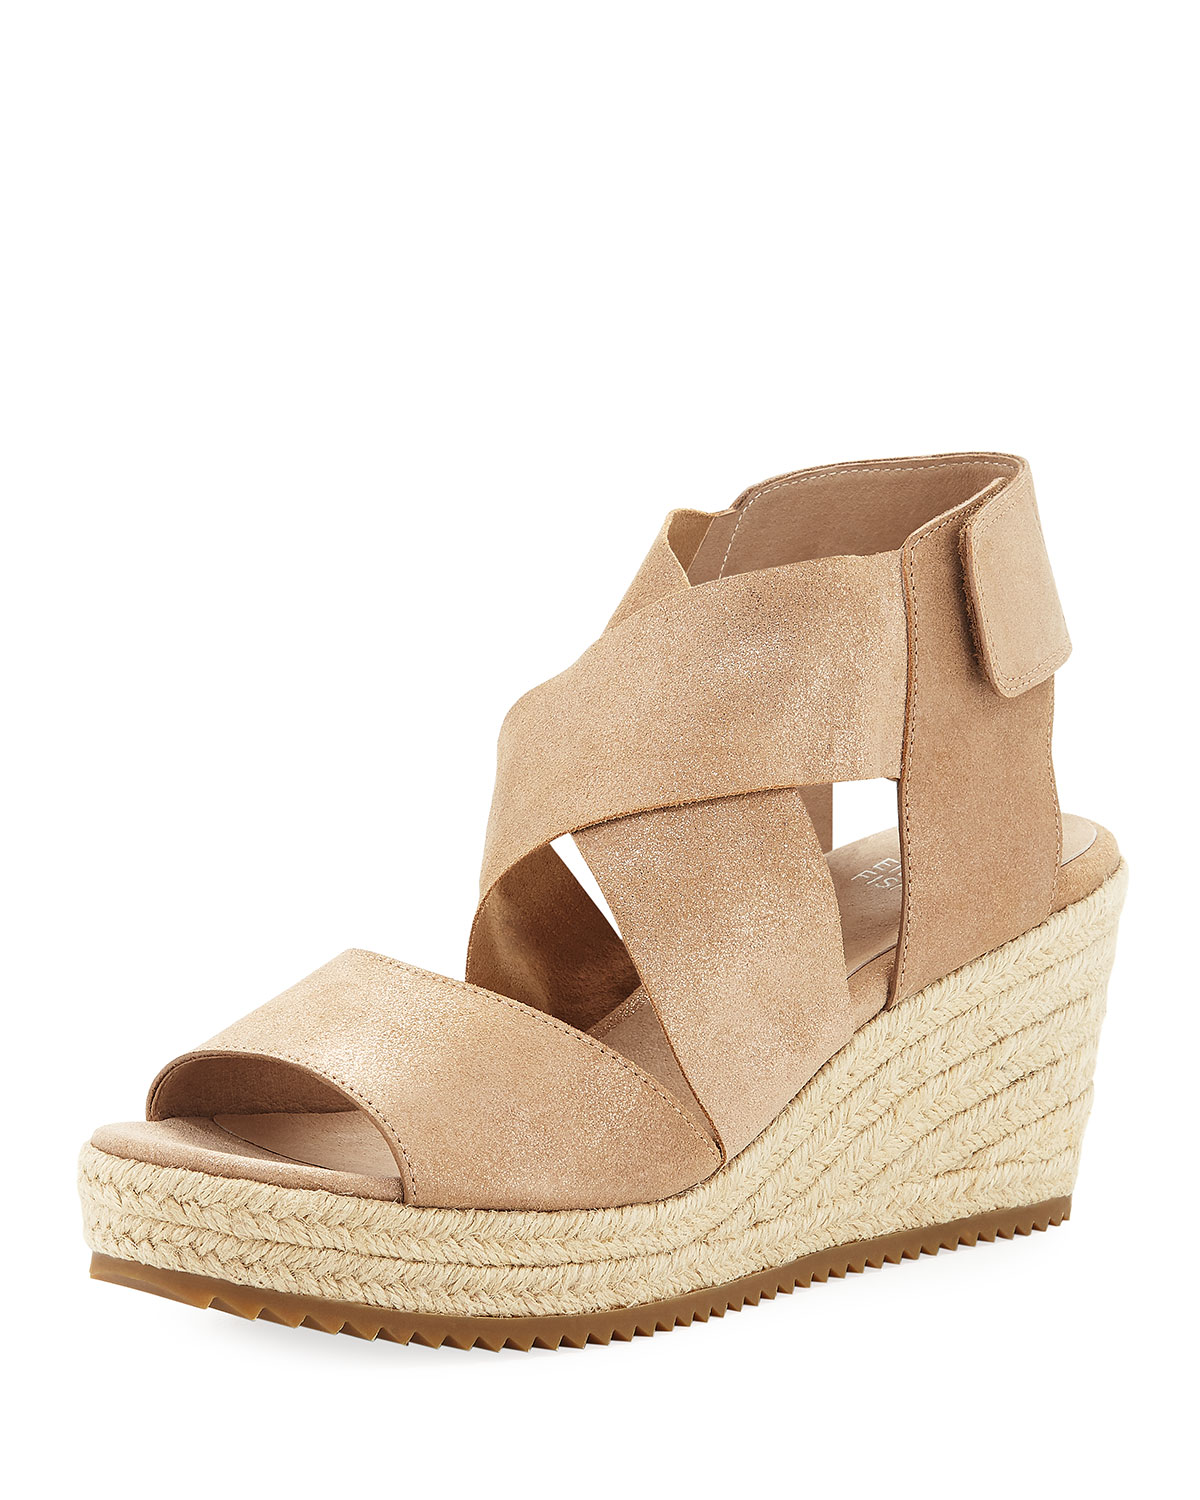 aecf6c5cc058 Eileen Fisher Willow Starry Suede Wedge Espadrille Sandal